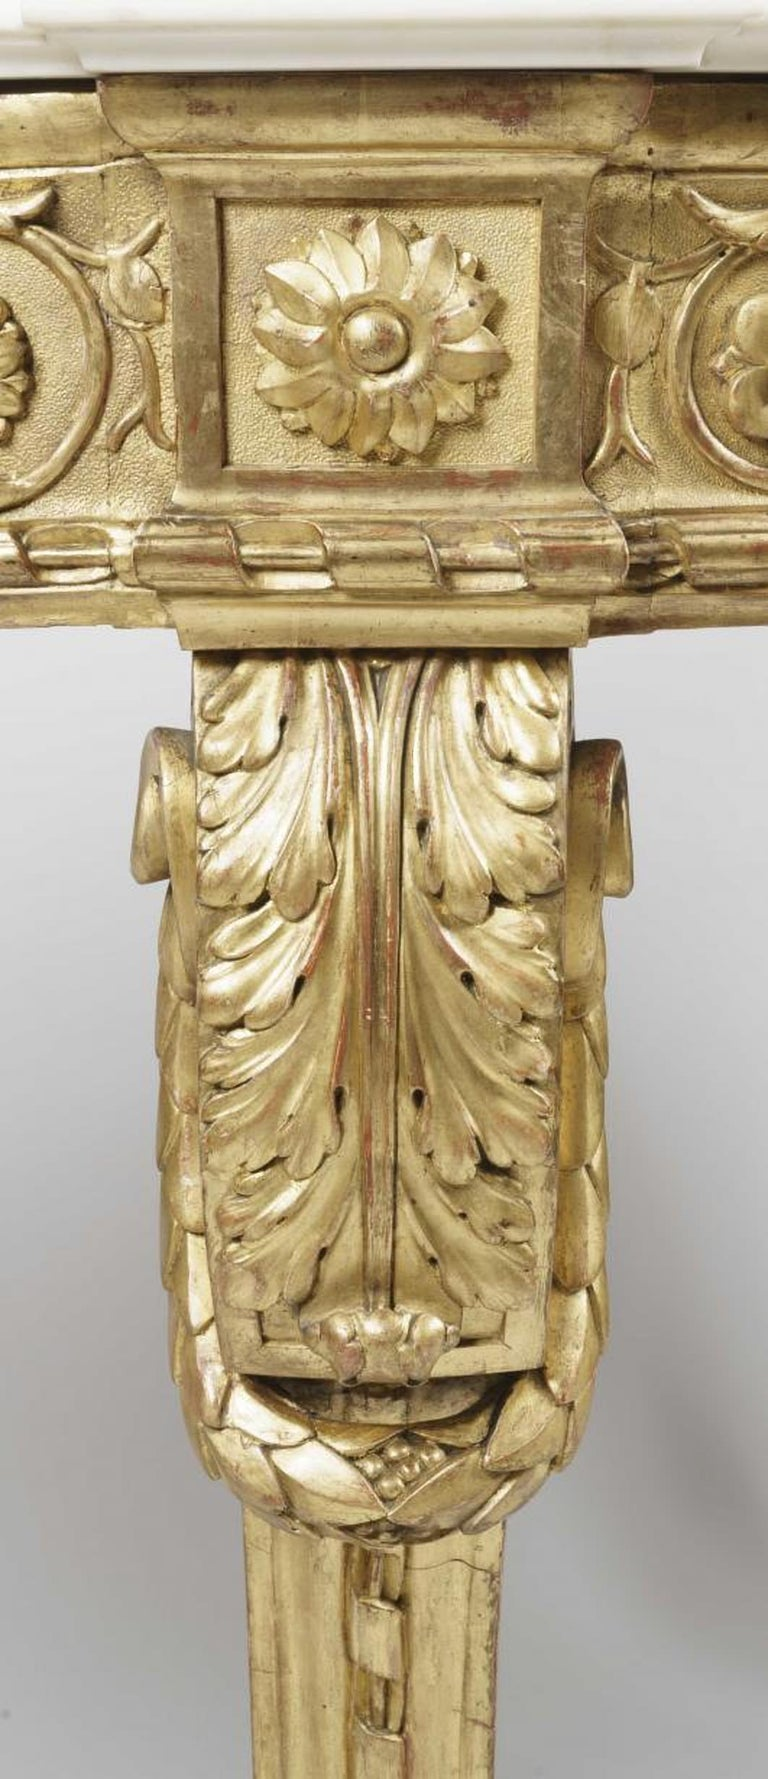 A fine pair of console tables in the Louis XV Manner  Constructed in carved and gilded wood; rising from four swept and scrolled legs adorned with acanthus designs, and dressed with looped garlands, and having conjoining stylised 'X' form stretchers